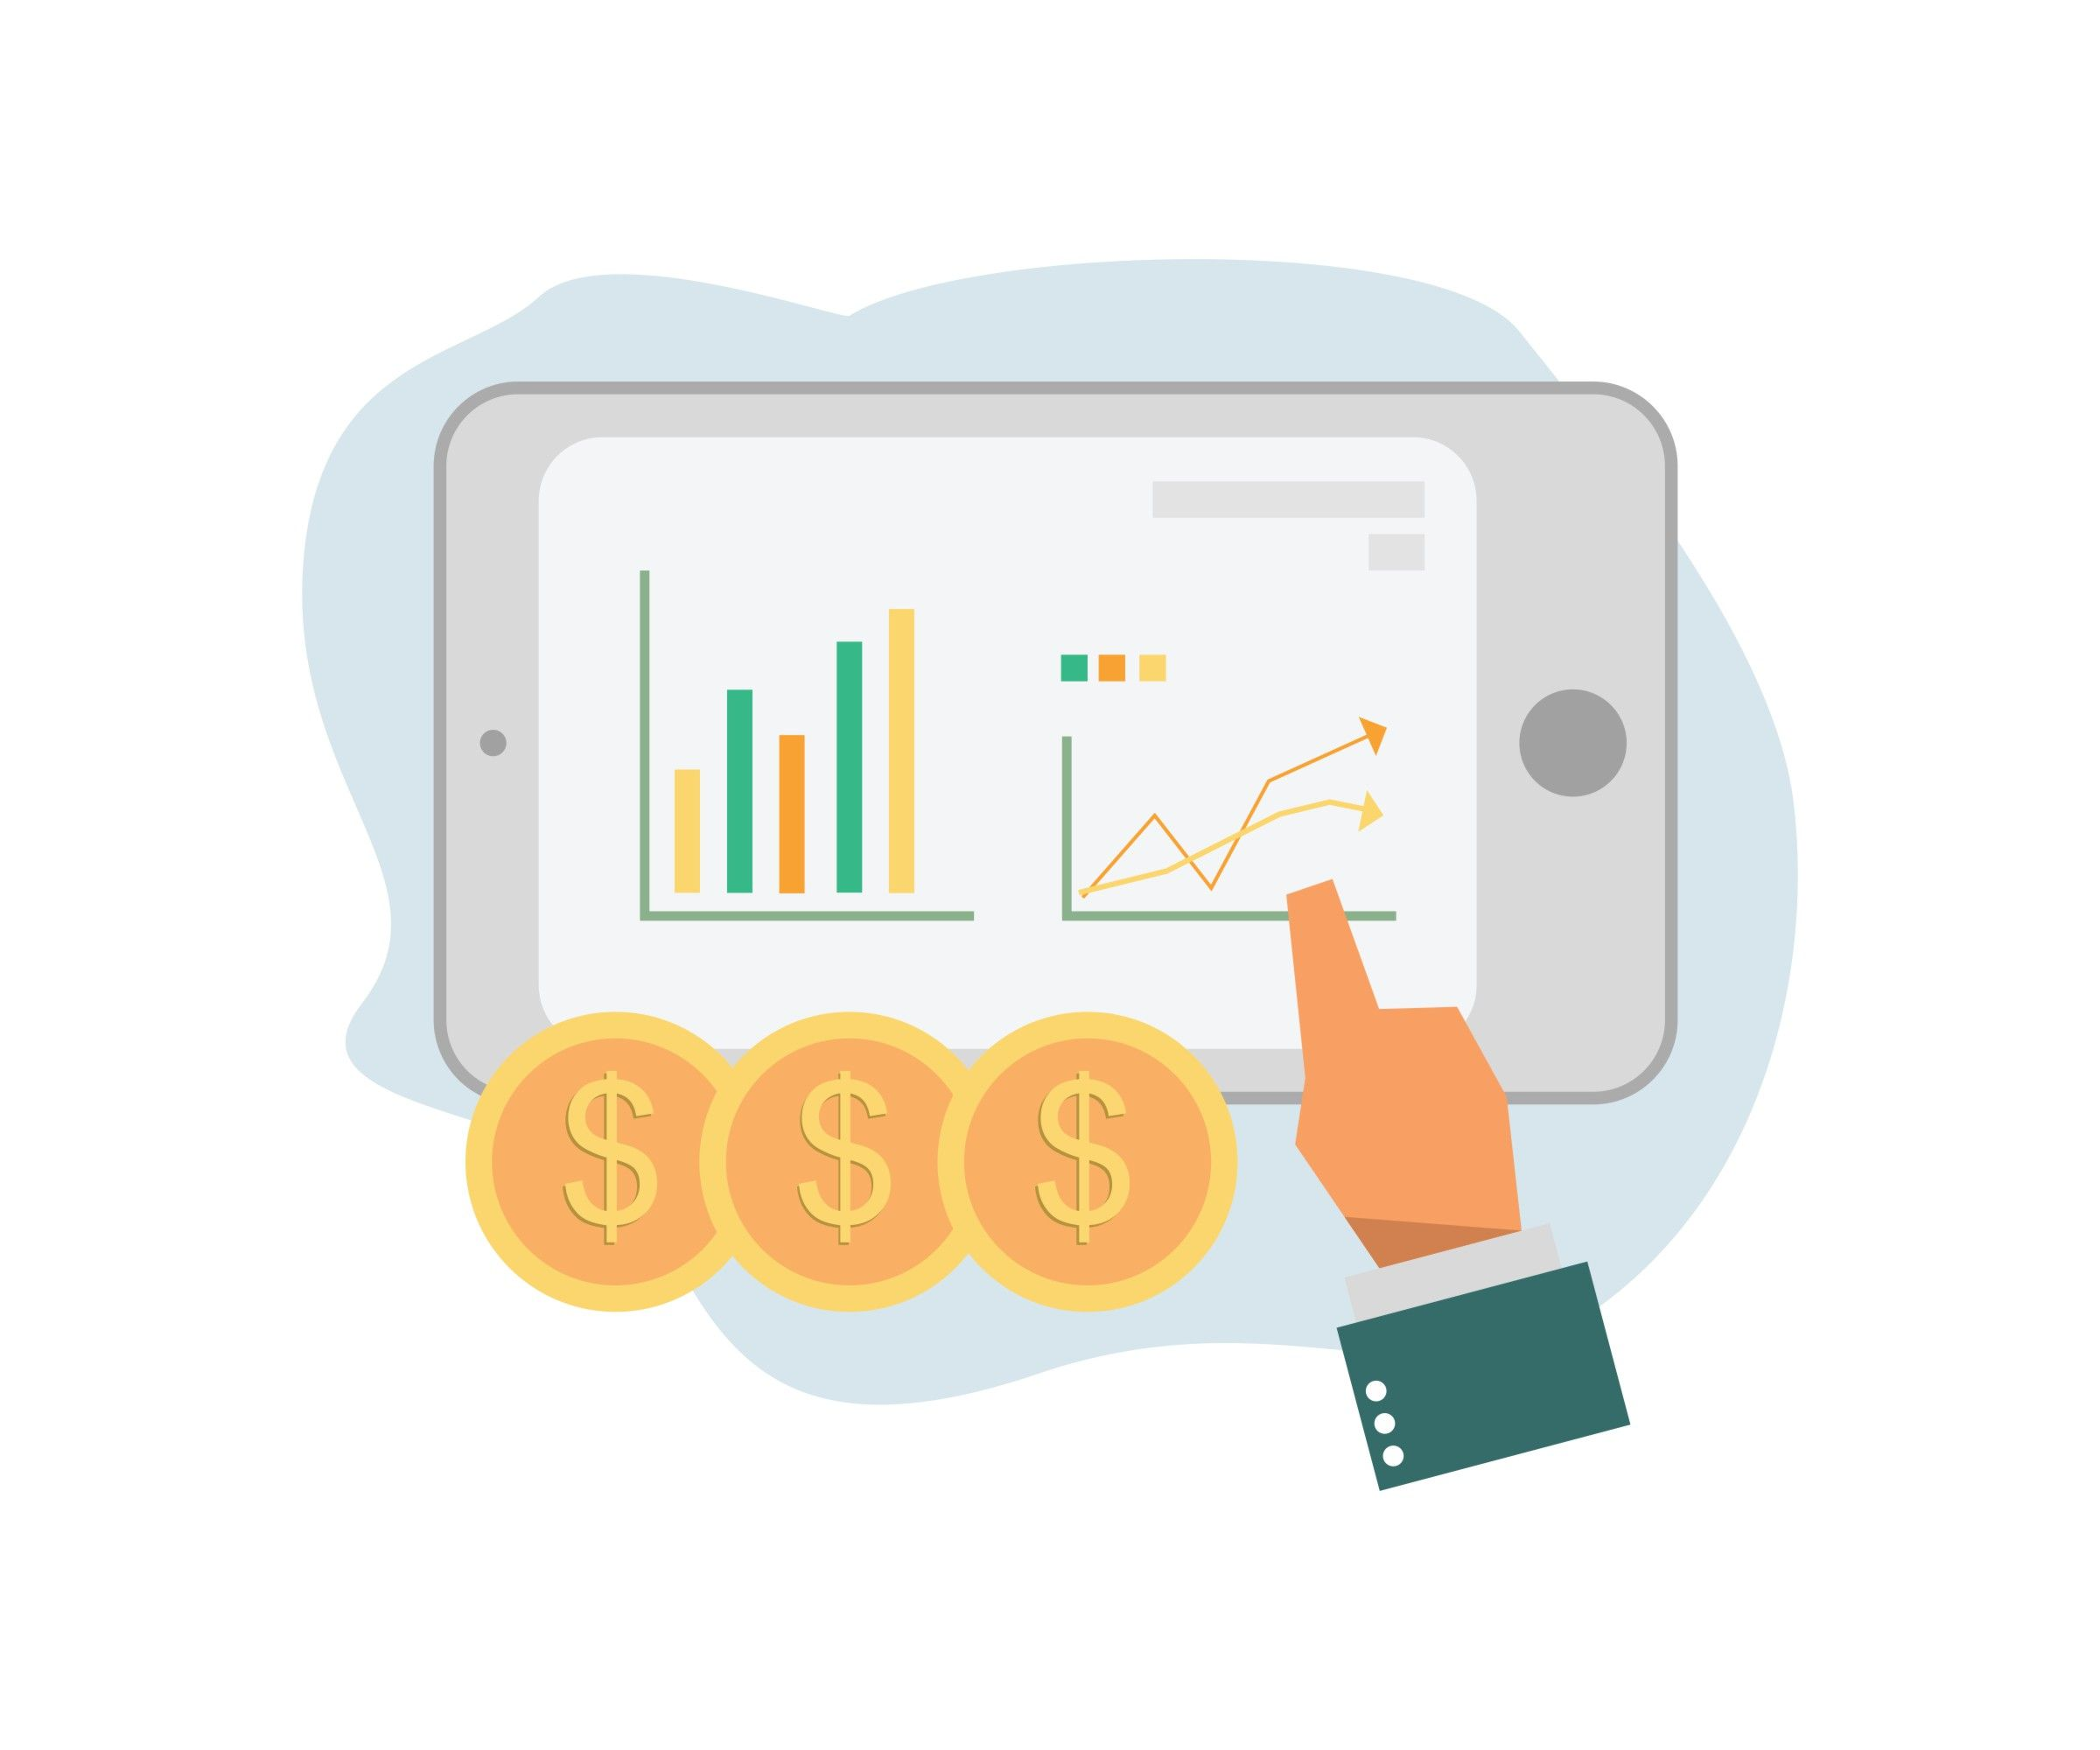 Data Analysis Flat Illustration With Simple Layout